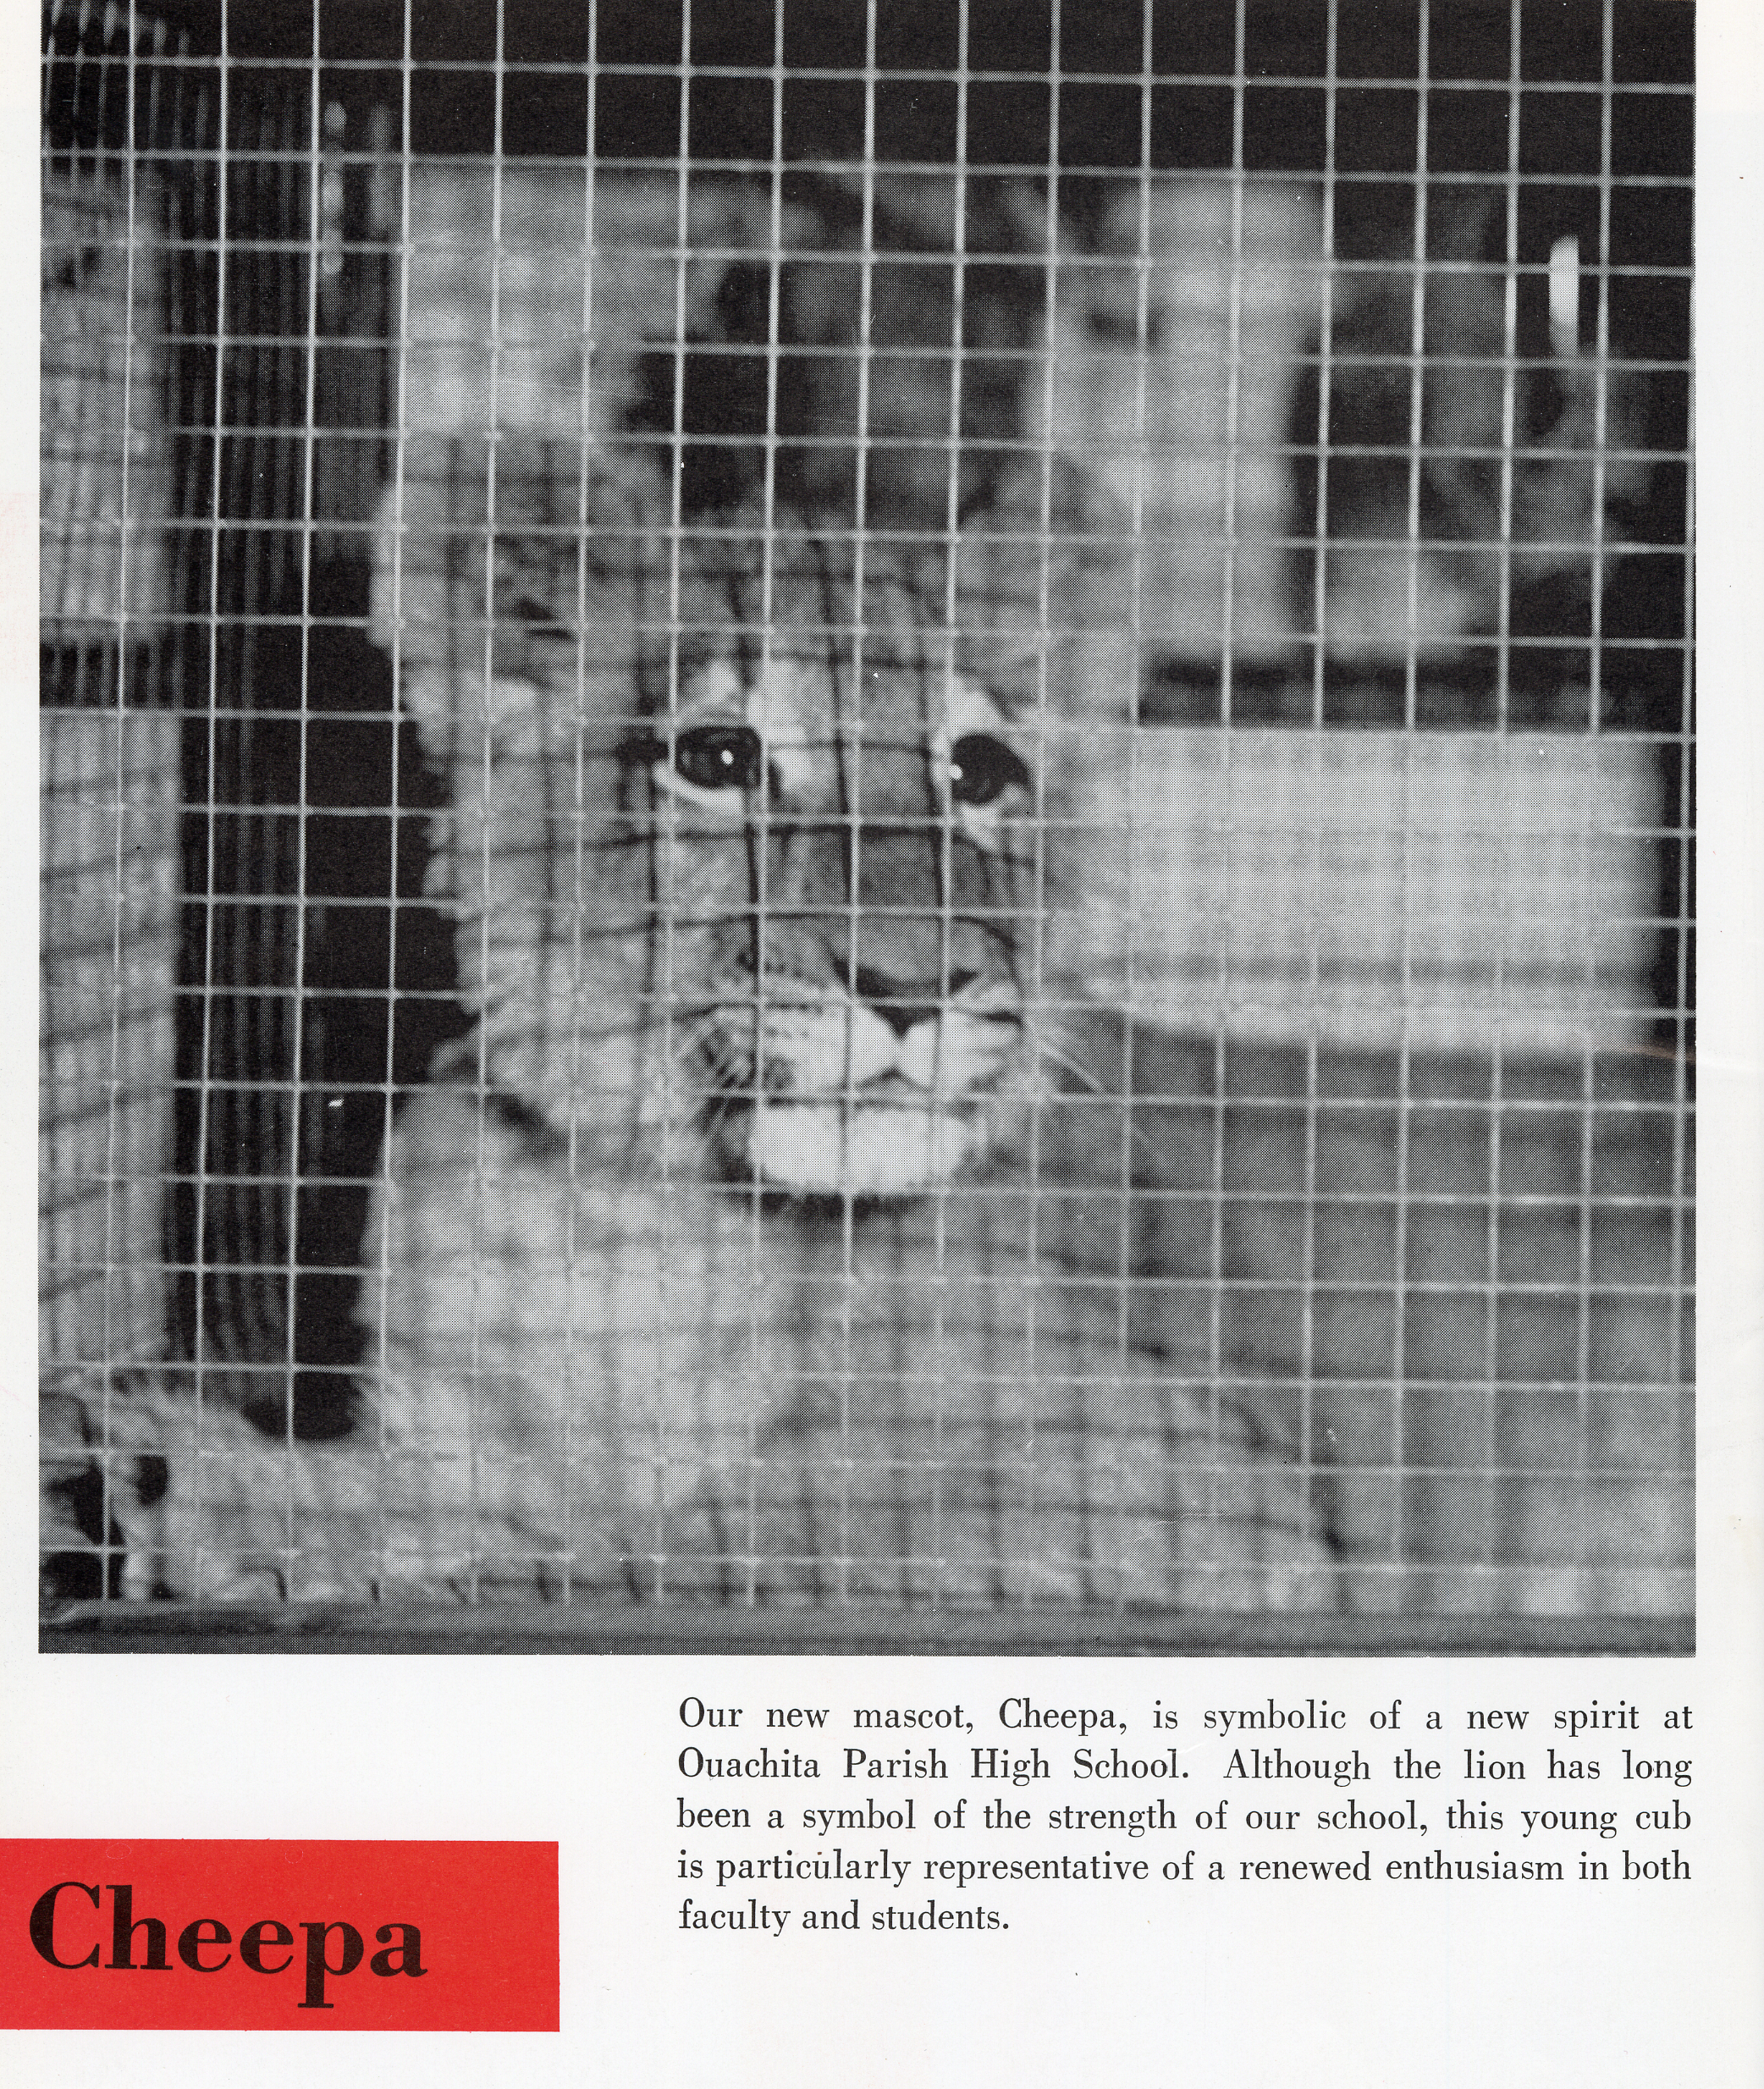 """A scan from the 1964 Roarer yearbook. A lion cub is behind a cage. The caption reads, """"Our new mascot, Cheepa, is symbolic of a new spirit at Ouachita Parish High School. Although the lion has long been a symbol of the strength of our school..."""